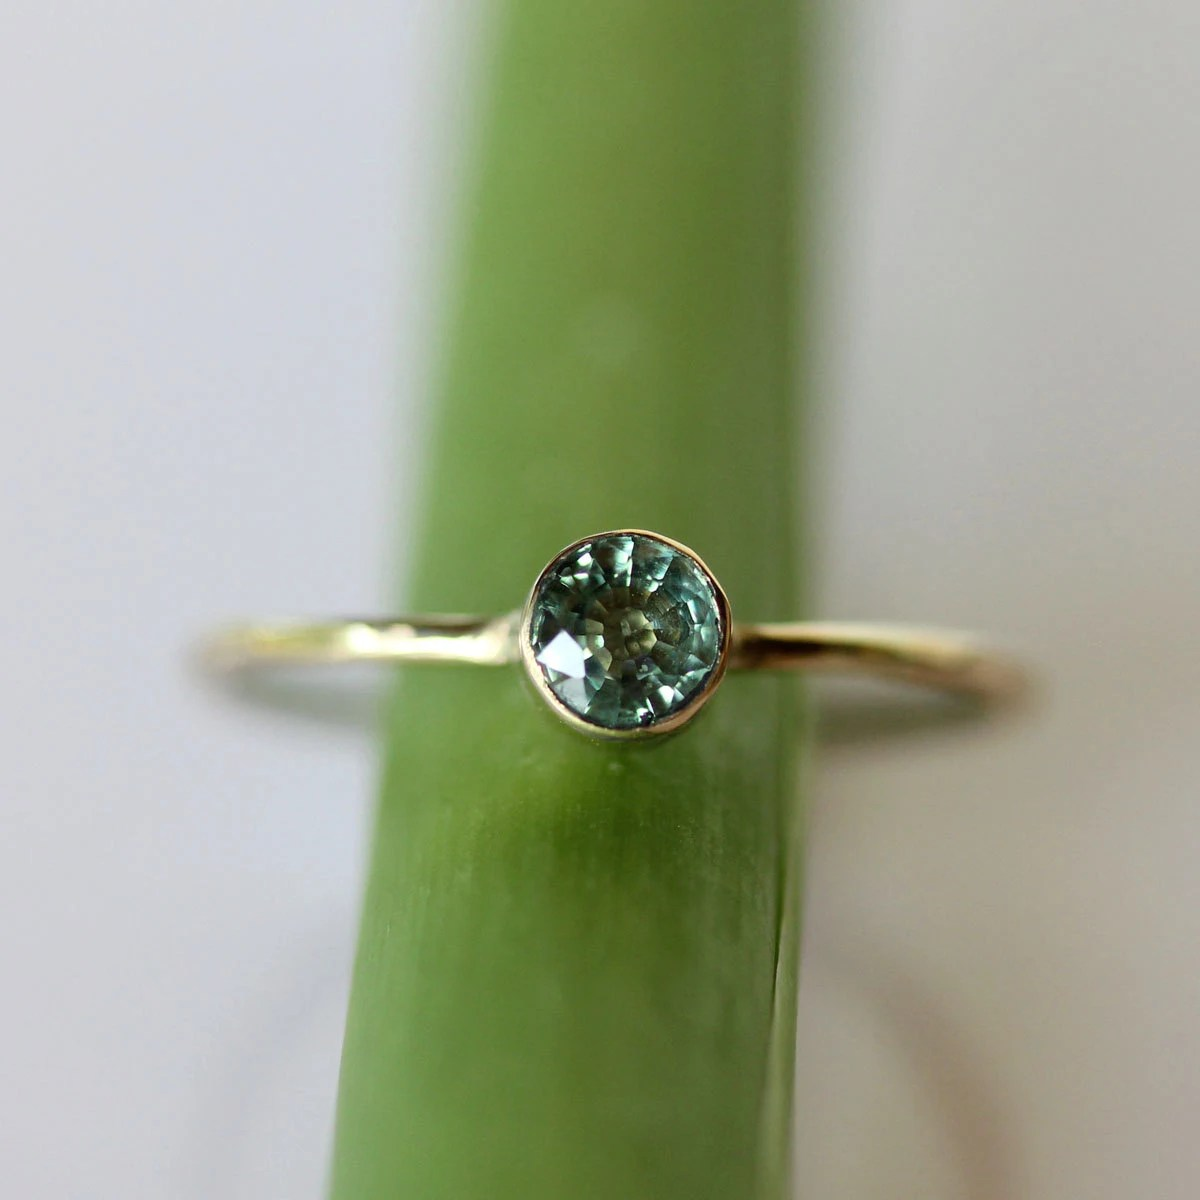 Green Sapphire 14K Gold Ring Gemstone RIng Stacking RIng